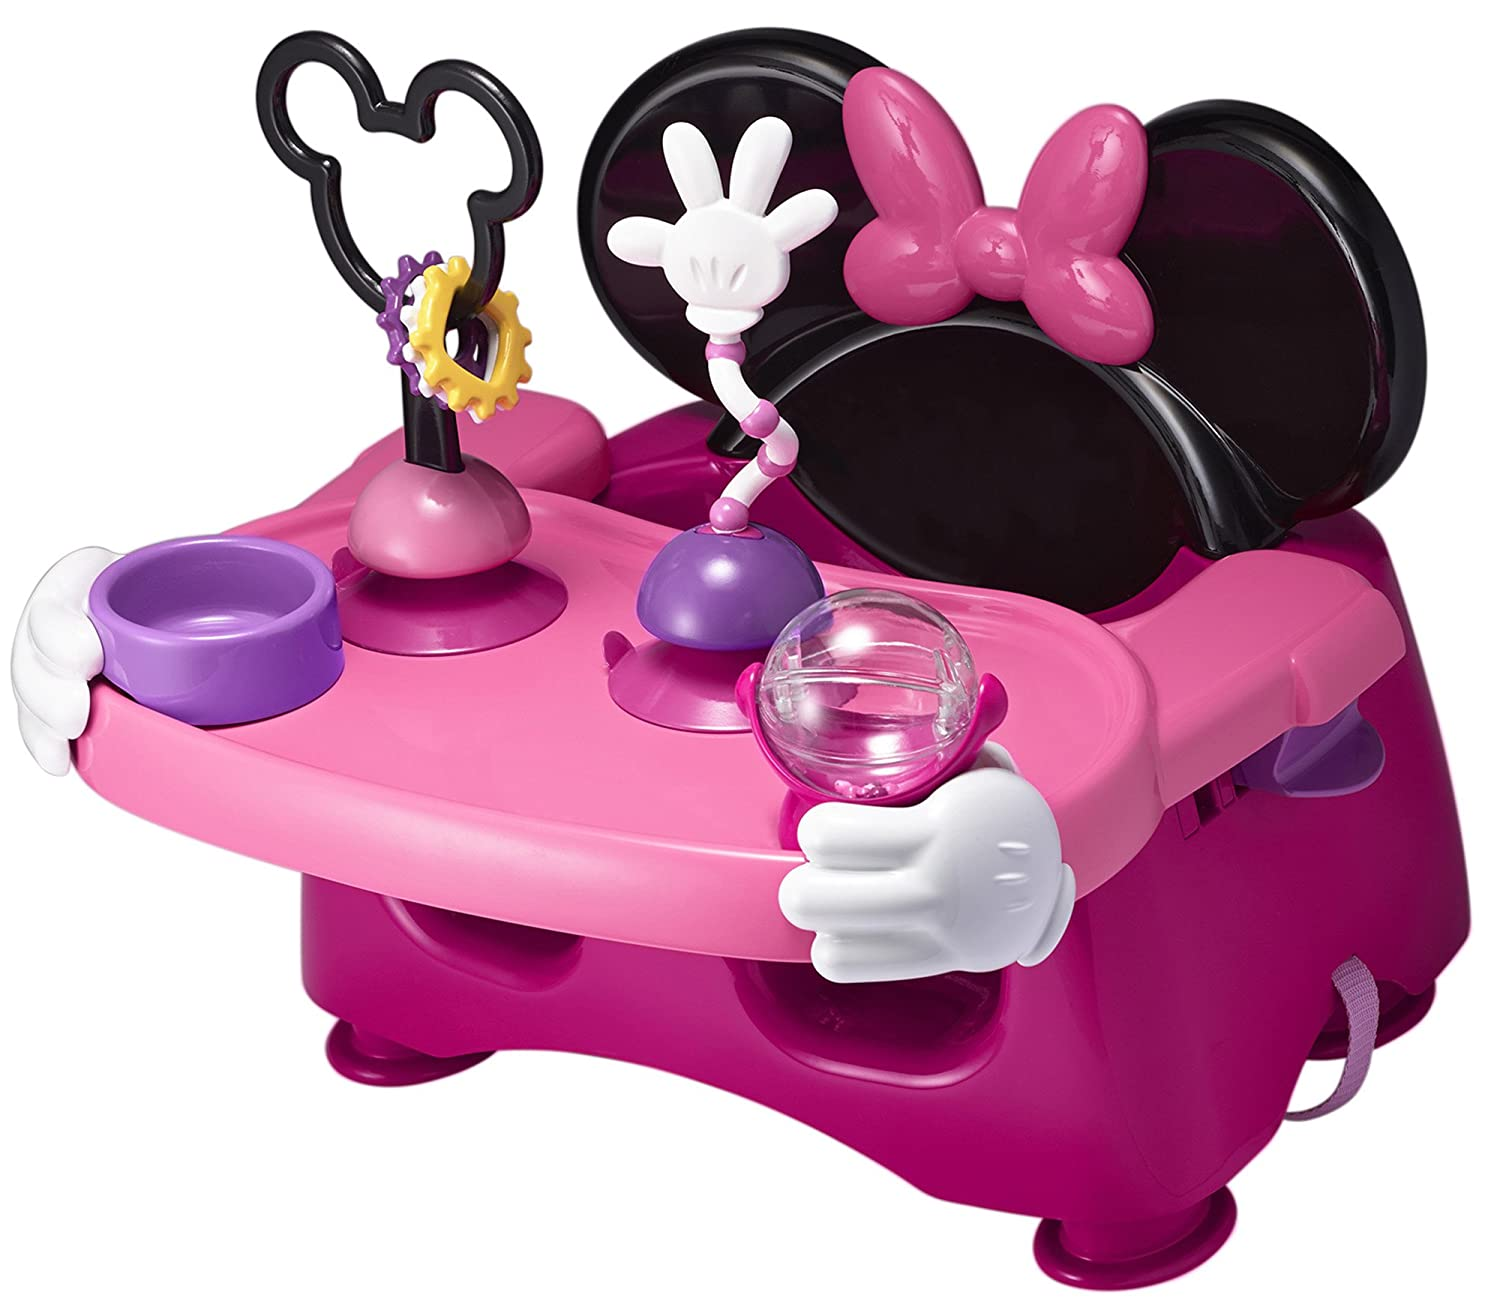 The First Years Disney Baby Helping Hands Feeding and Activity Seat, Minnie Mouse Y10598A1